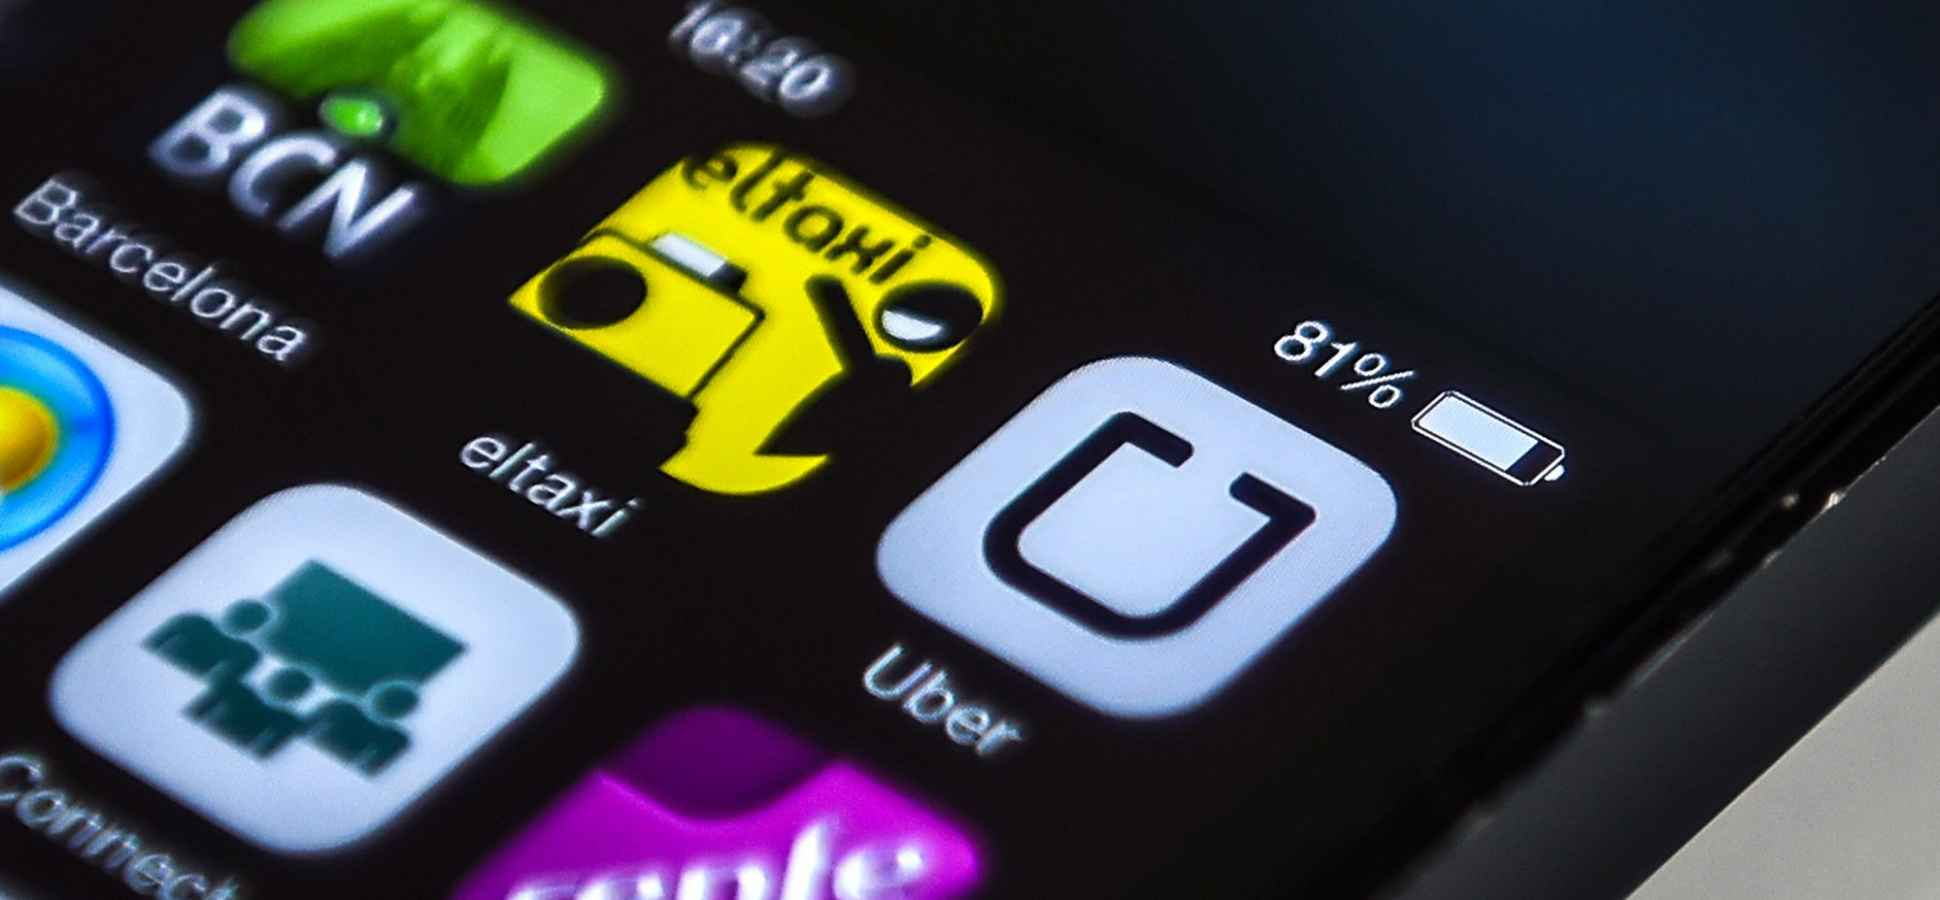 Why Uber's $50 Billion Valuation Could Burst the Tech Bubble